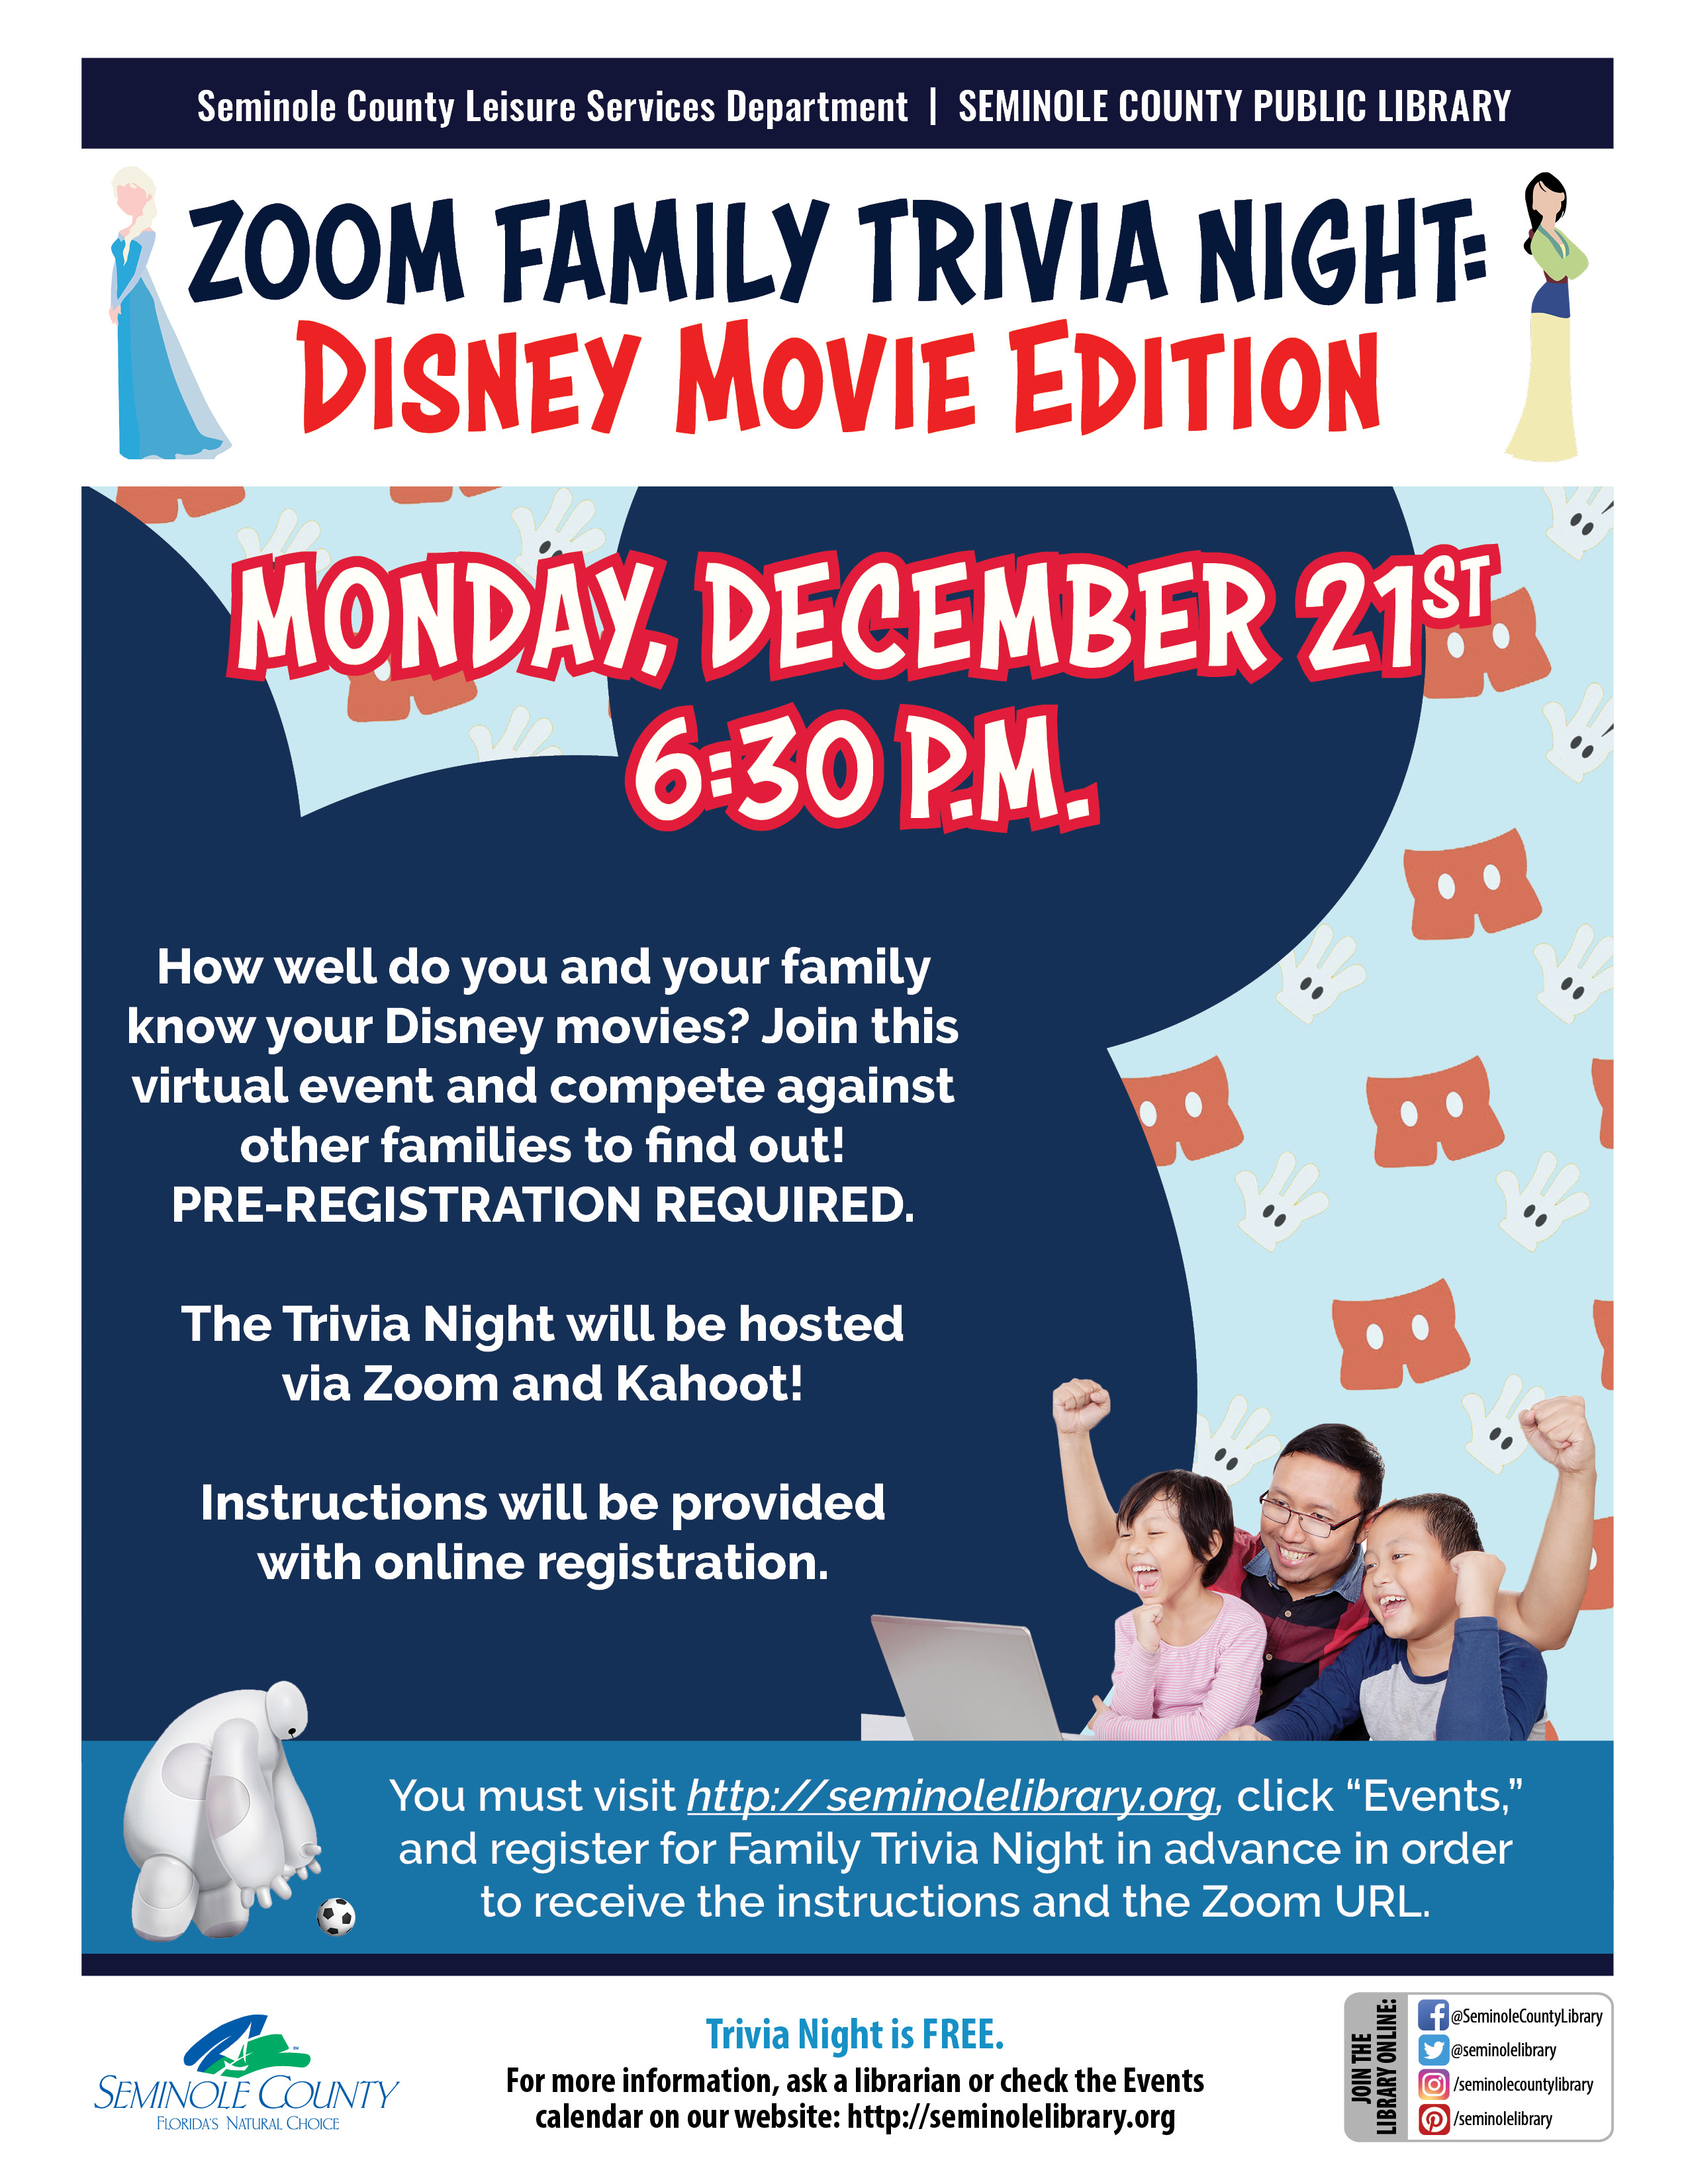 Zoom Family Trivia Night - Disney Edition